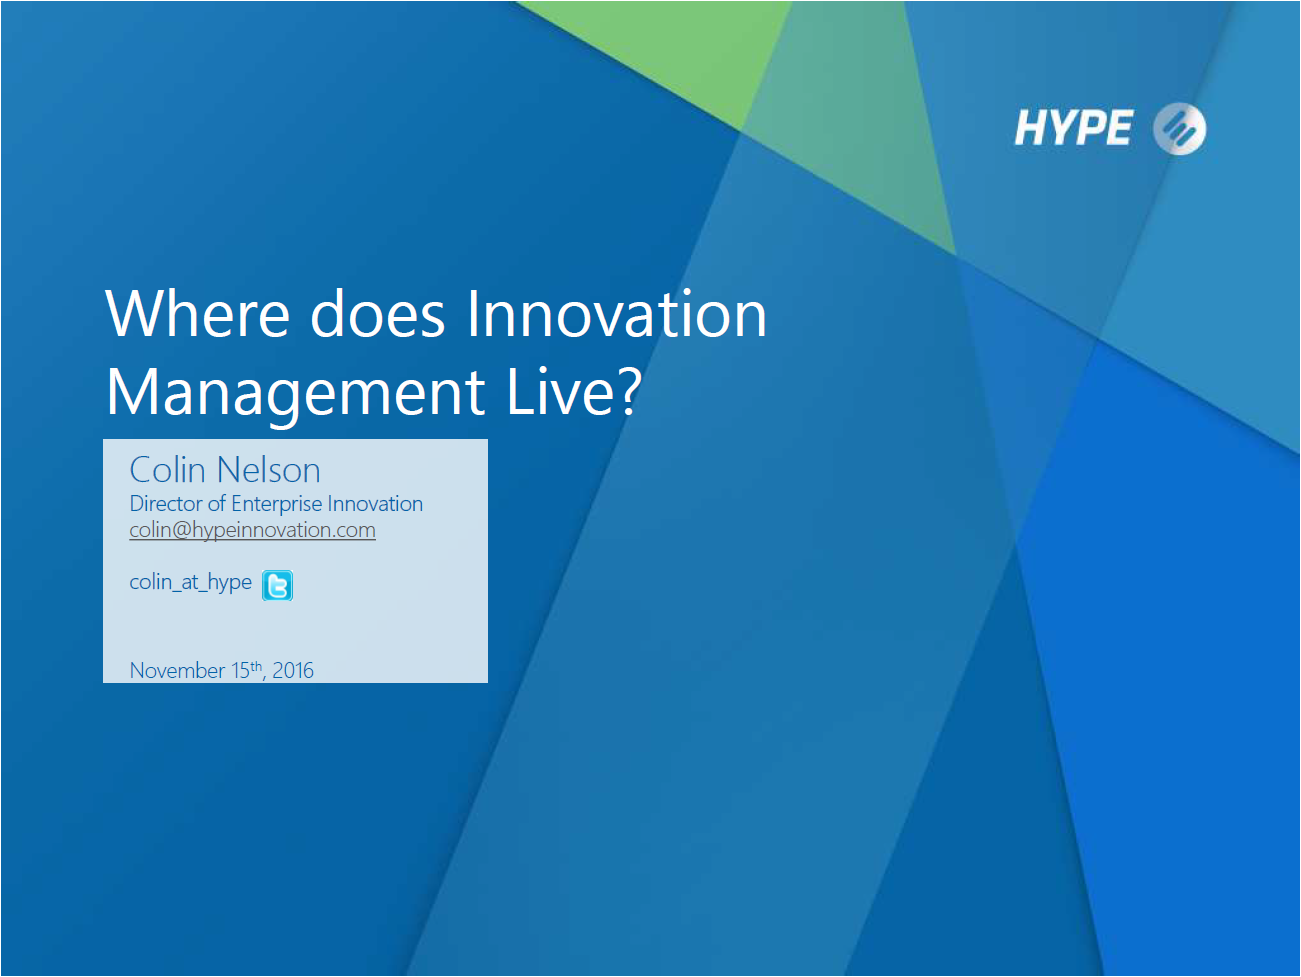 Where Does Innovation Management Live?